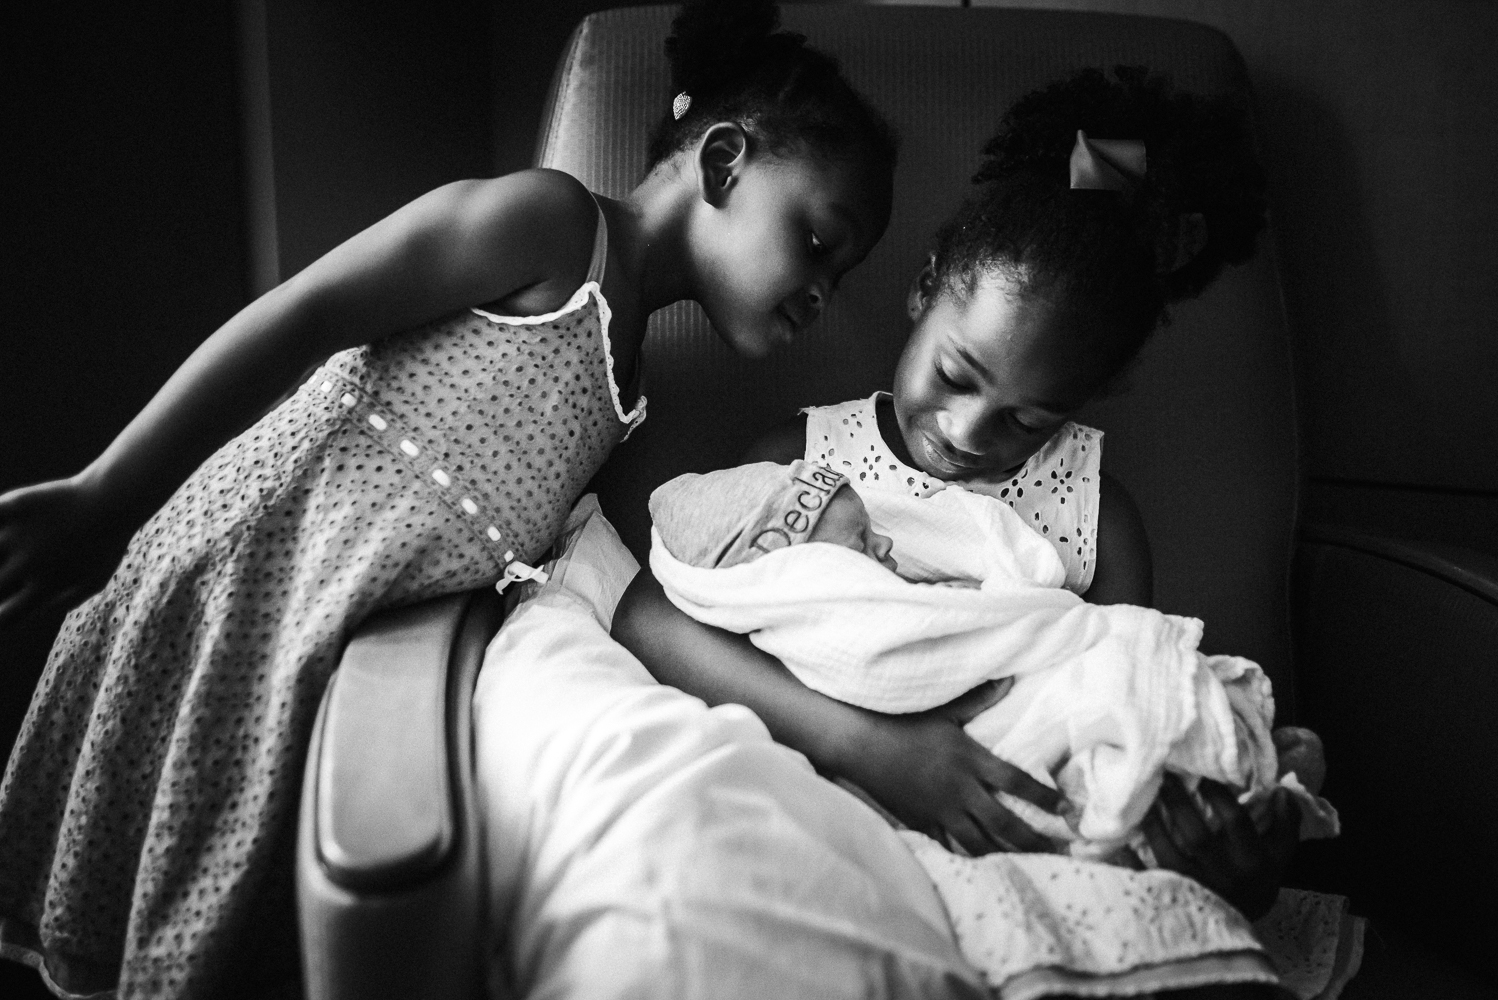 These two big sister were over the moon about meeting their baby brother!